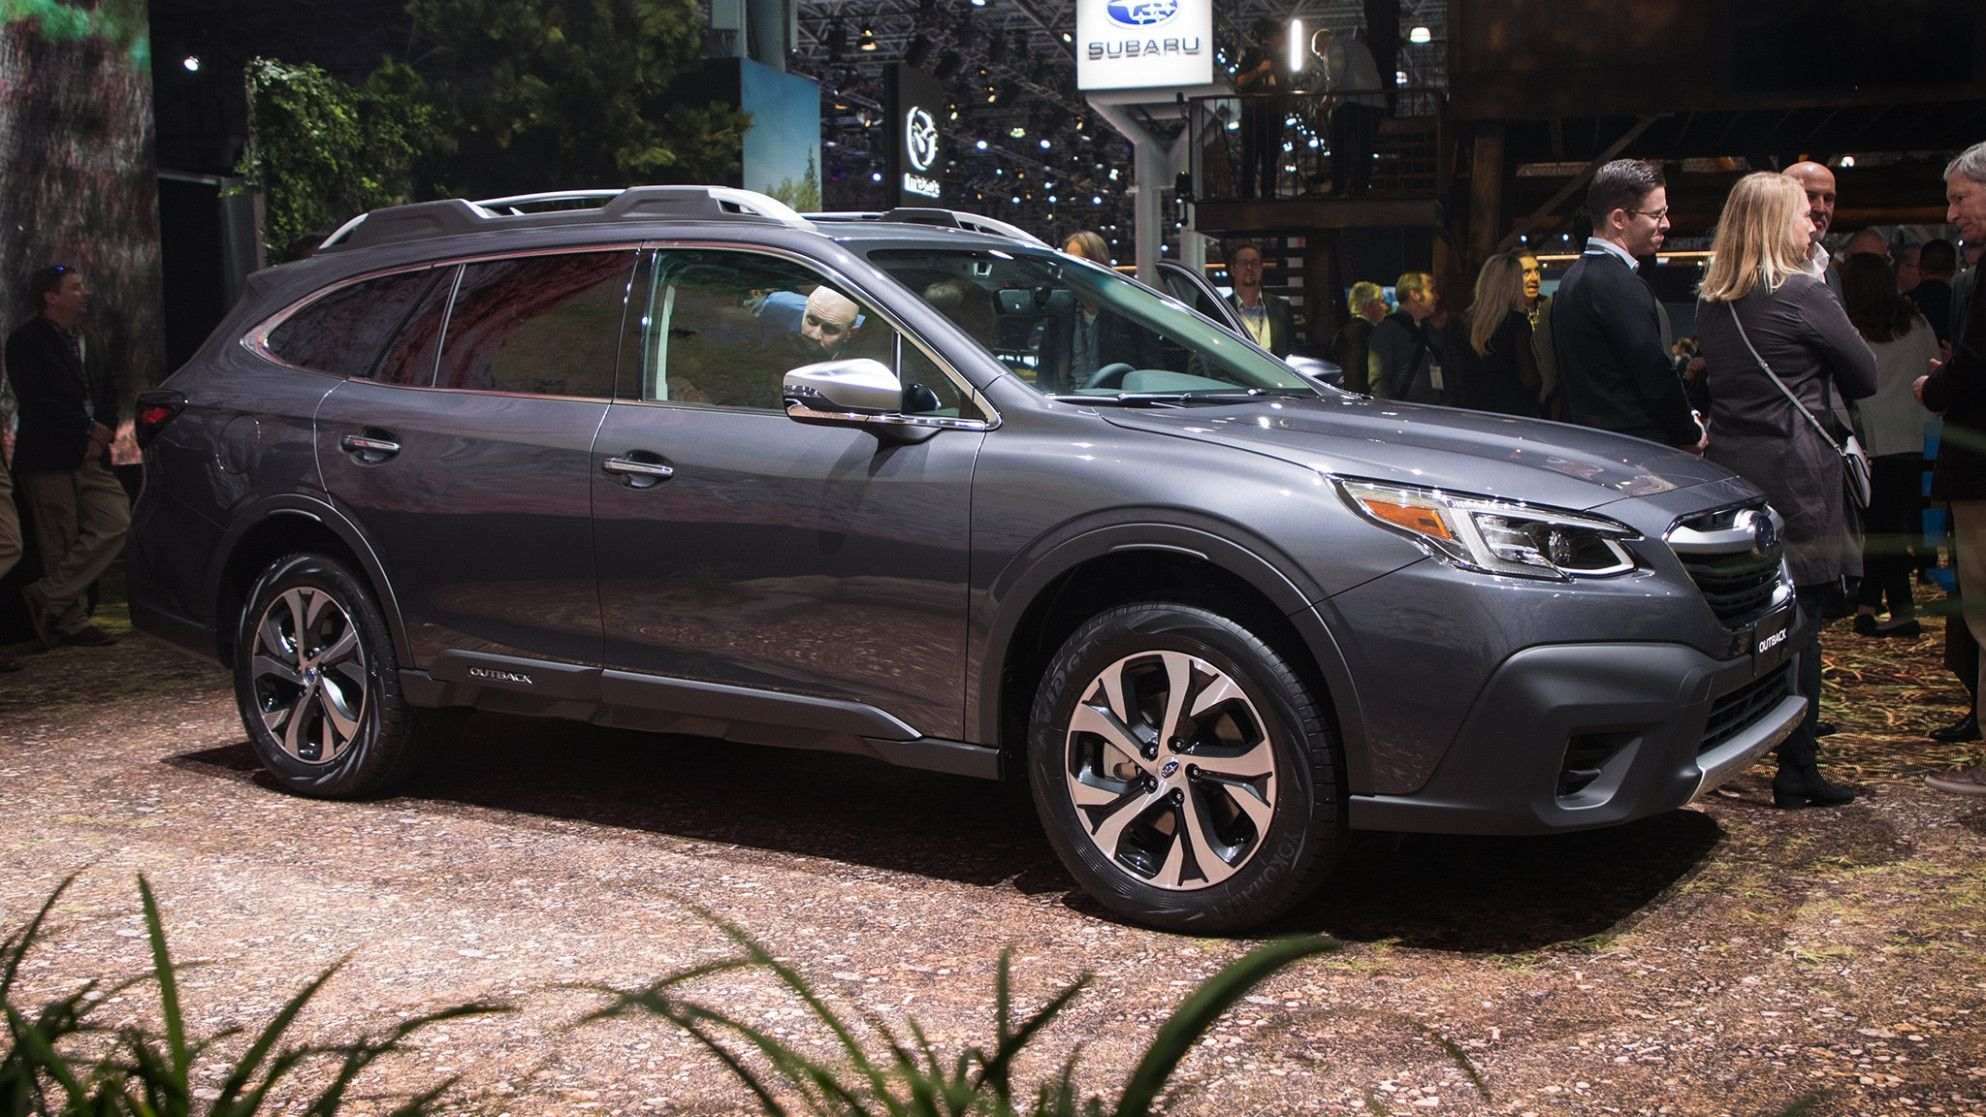 If You Are Looking For 2020 Honda Crv Reddit Review You Ve Come To The Right Place We Have 10 Images About 2020 Honda Crv Reddit Rev Honda Crv Acura Mdx Acura